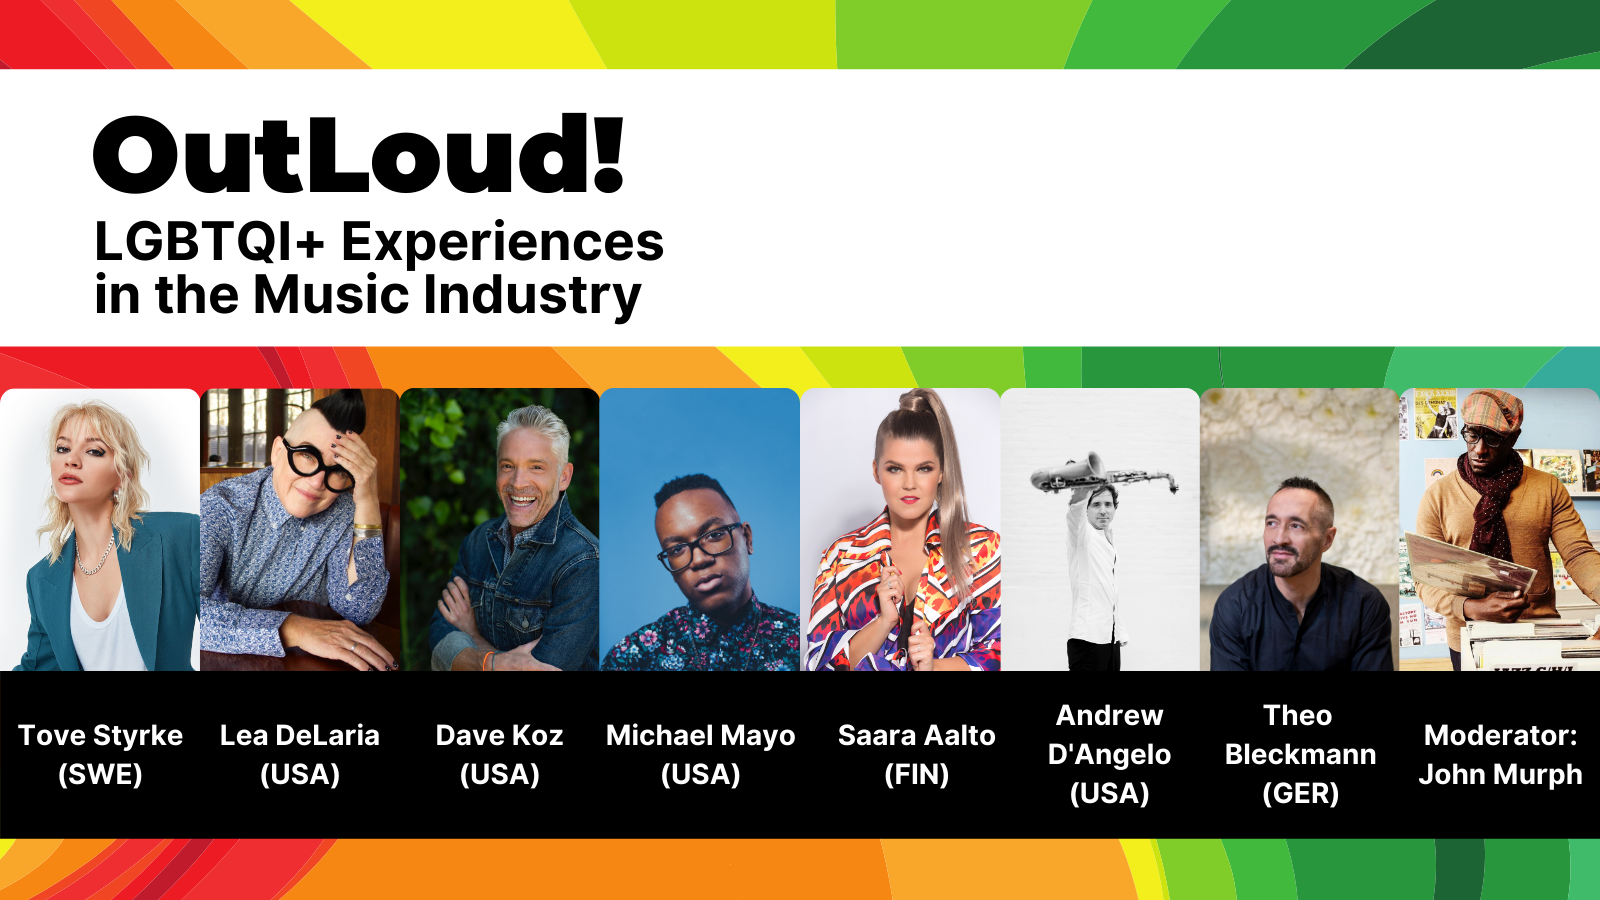 OutLoud! LGBTQI+ Experiences in the Music Industry